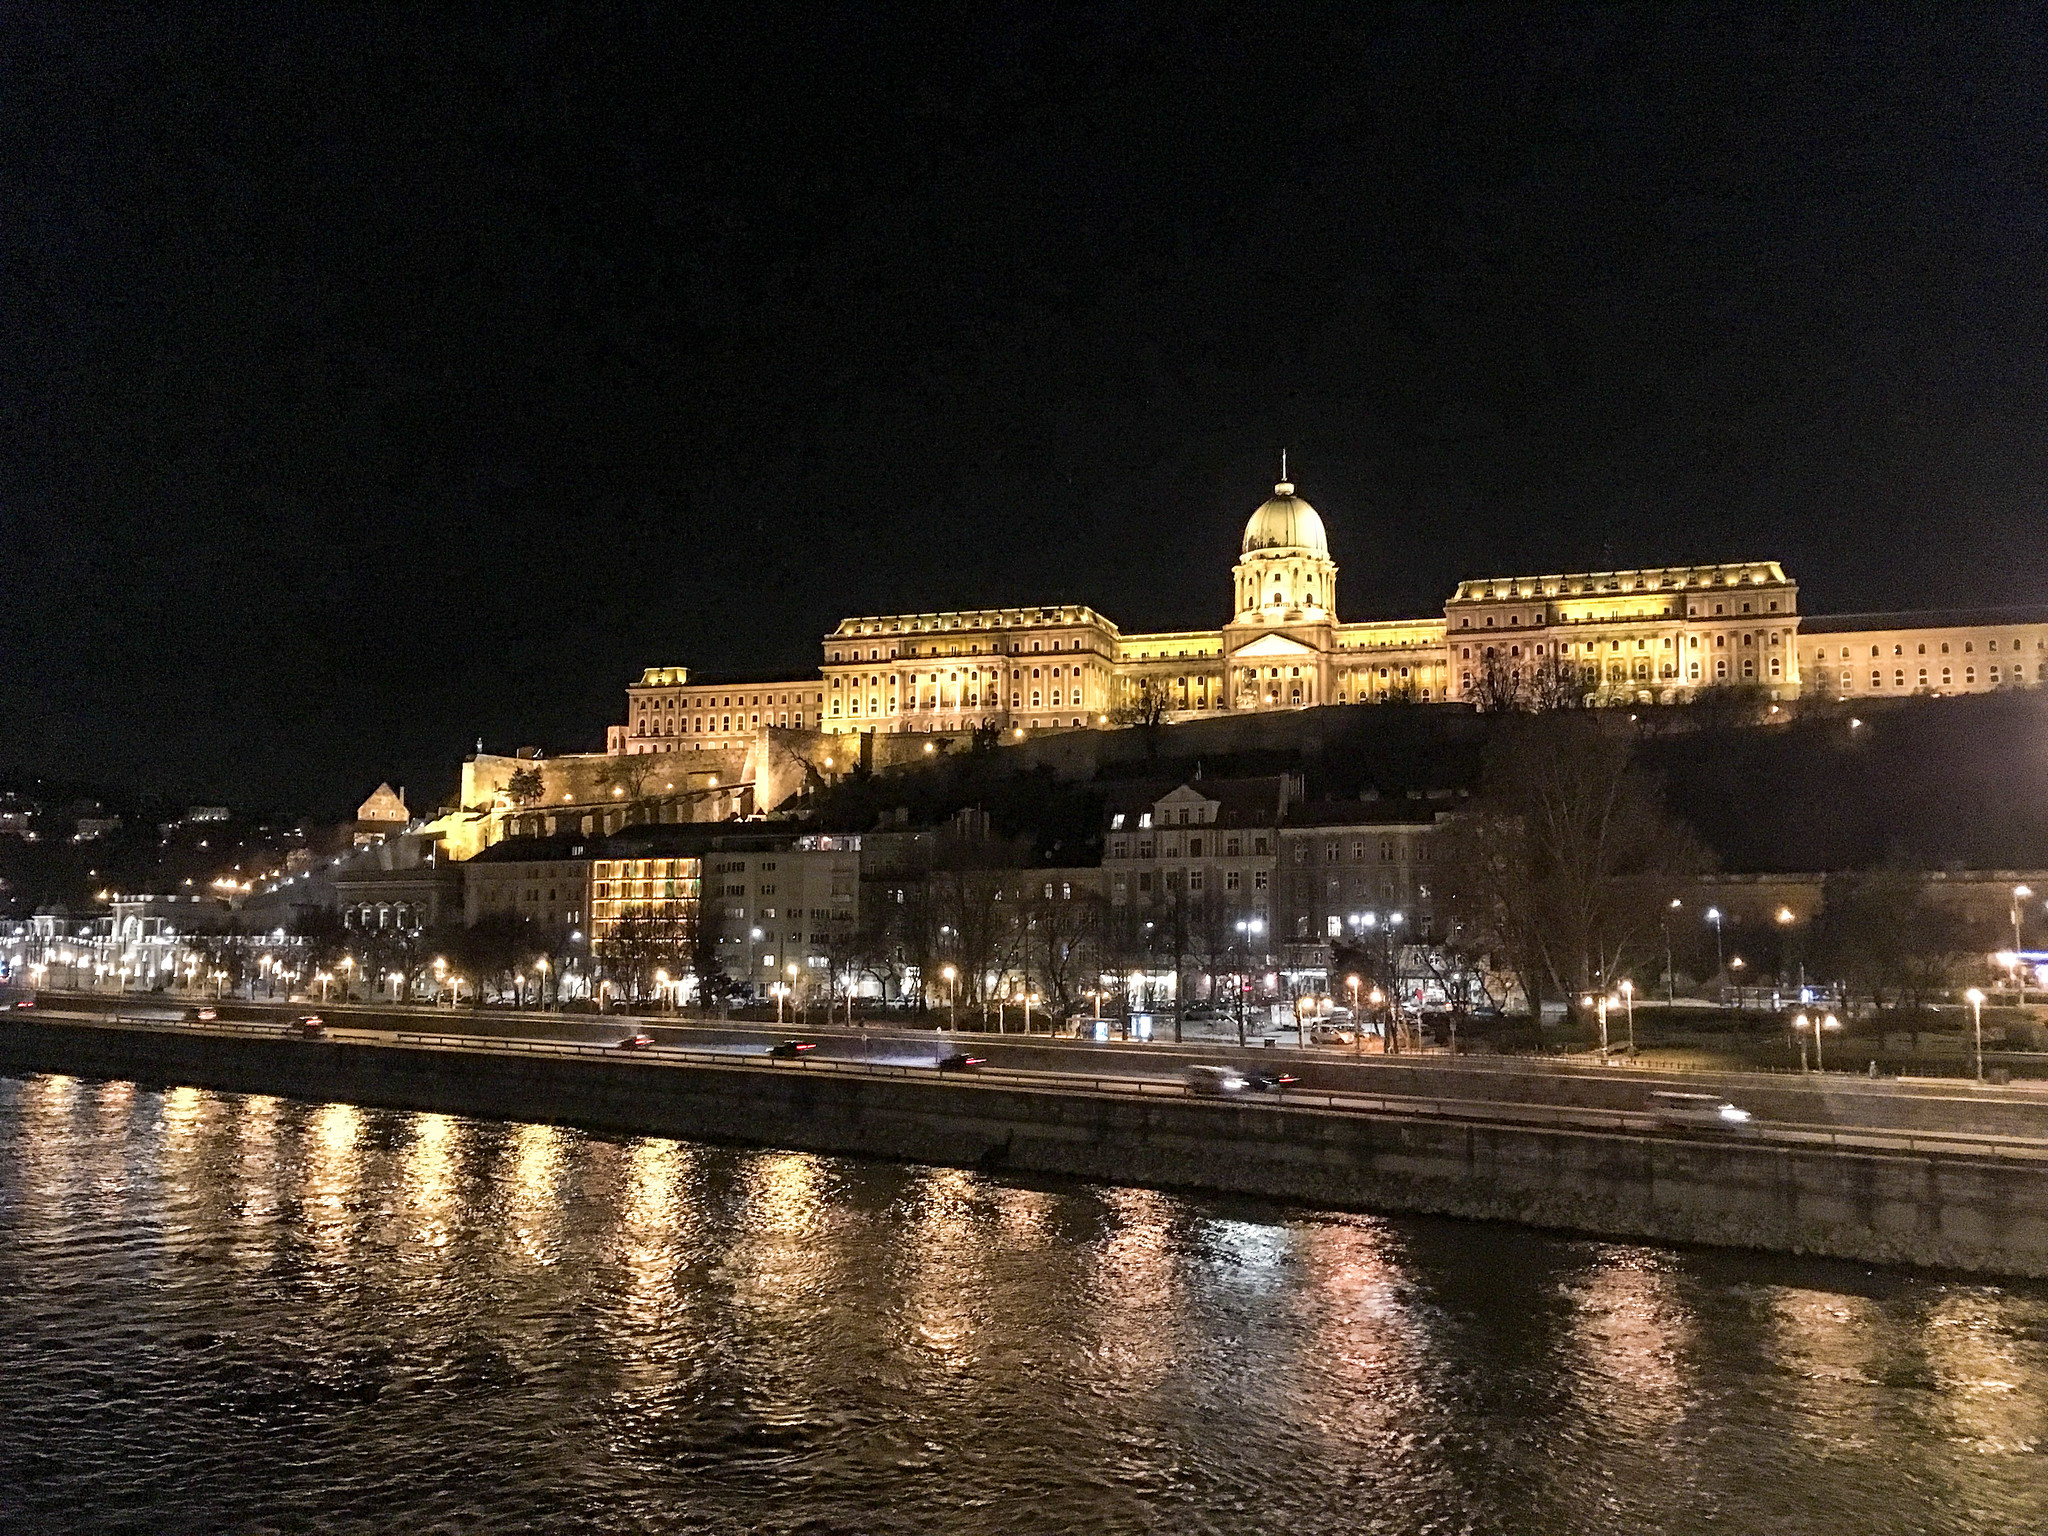 what to wear in budapest in winter make sure you're warm at night when the city's aglow